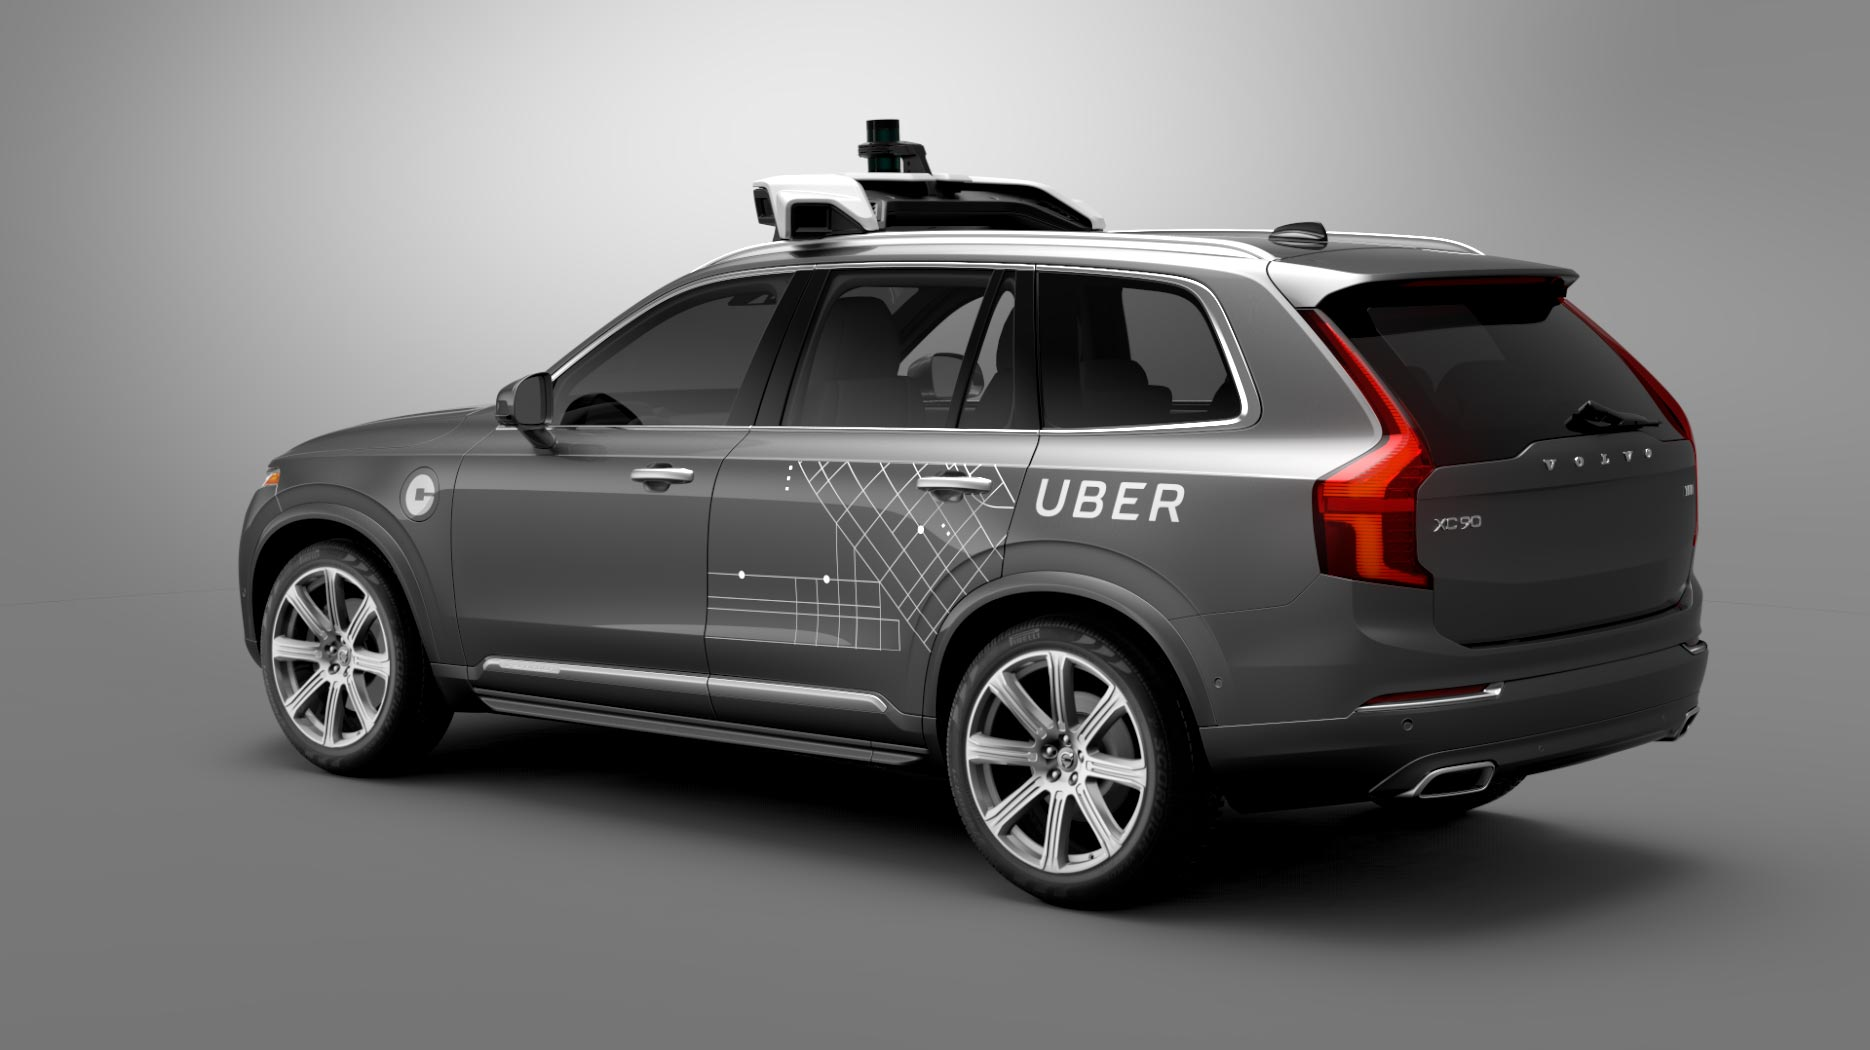 Uber's First Self-Driving Fleet Arrives in Pittsburgh This Month thumbnail